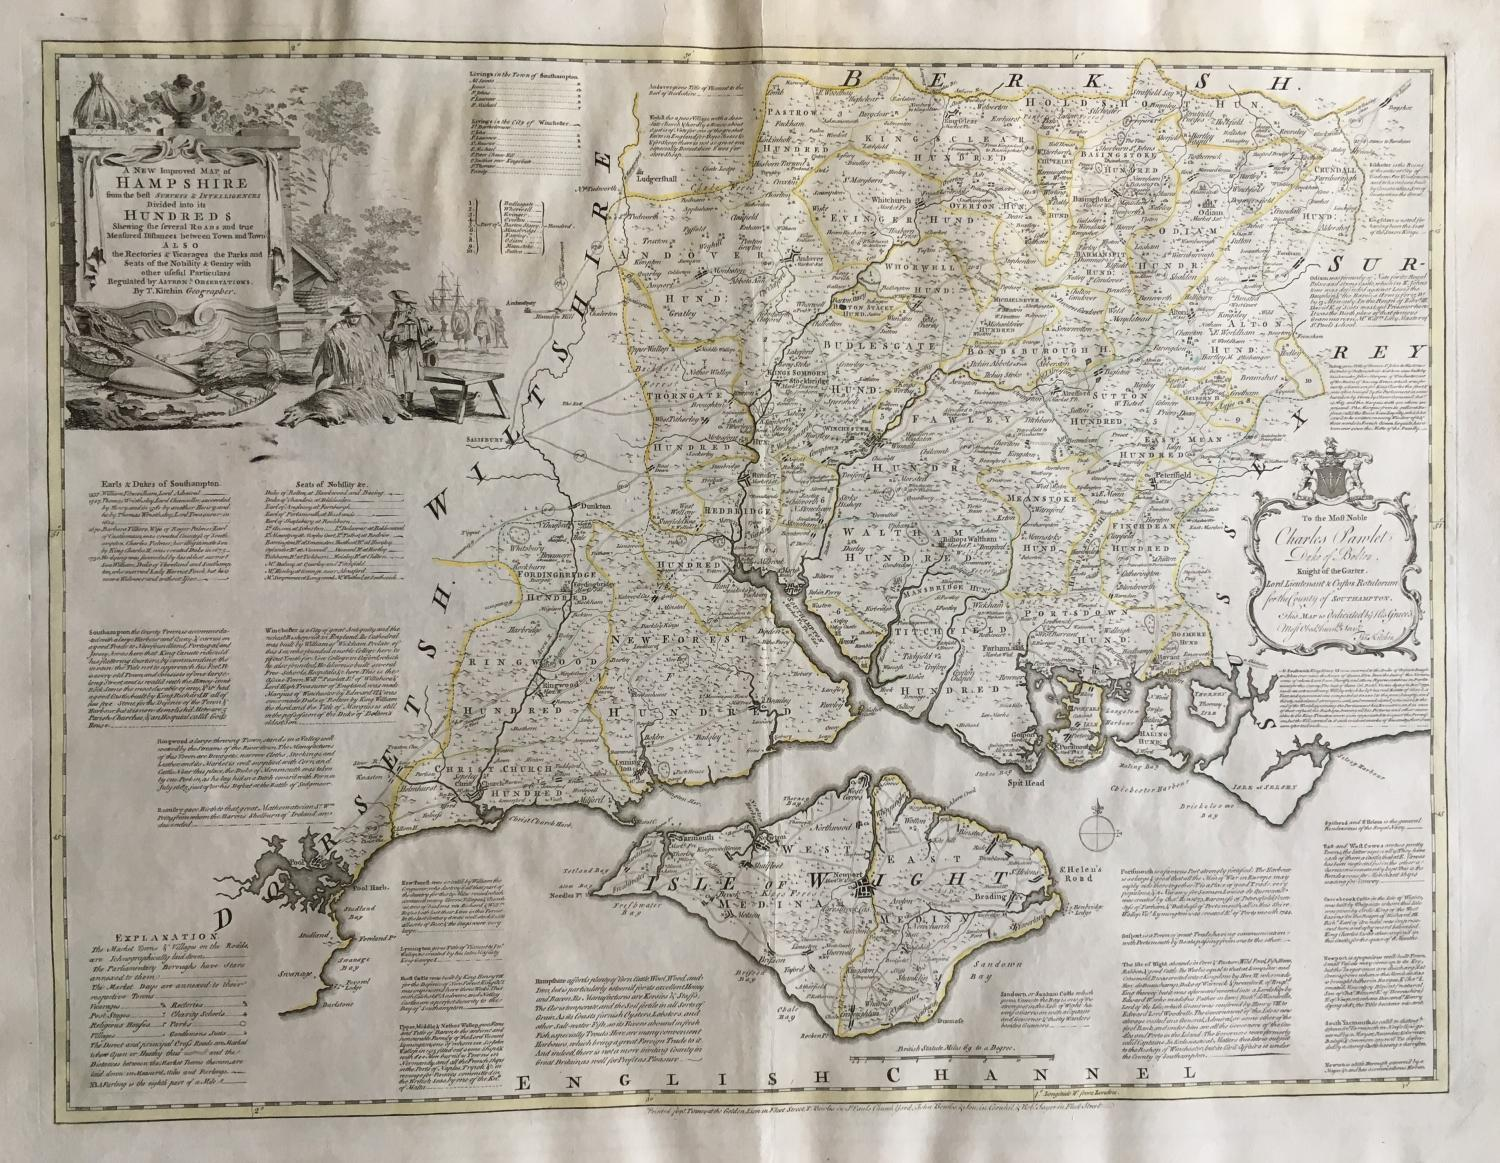 Kitchin - A New & Improved Map of Hampshire